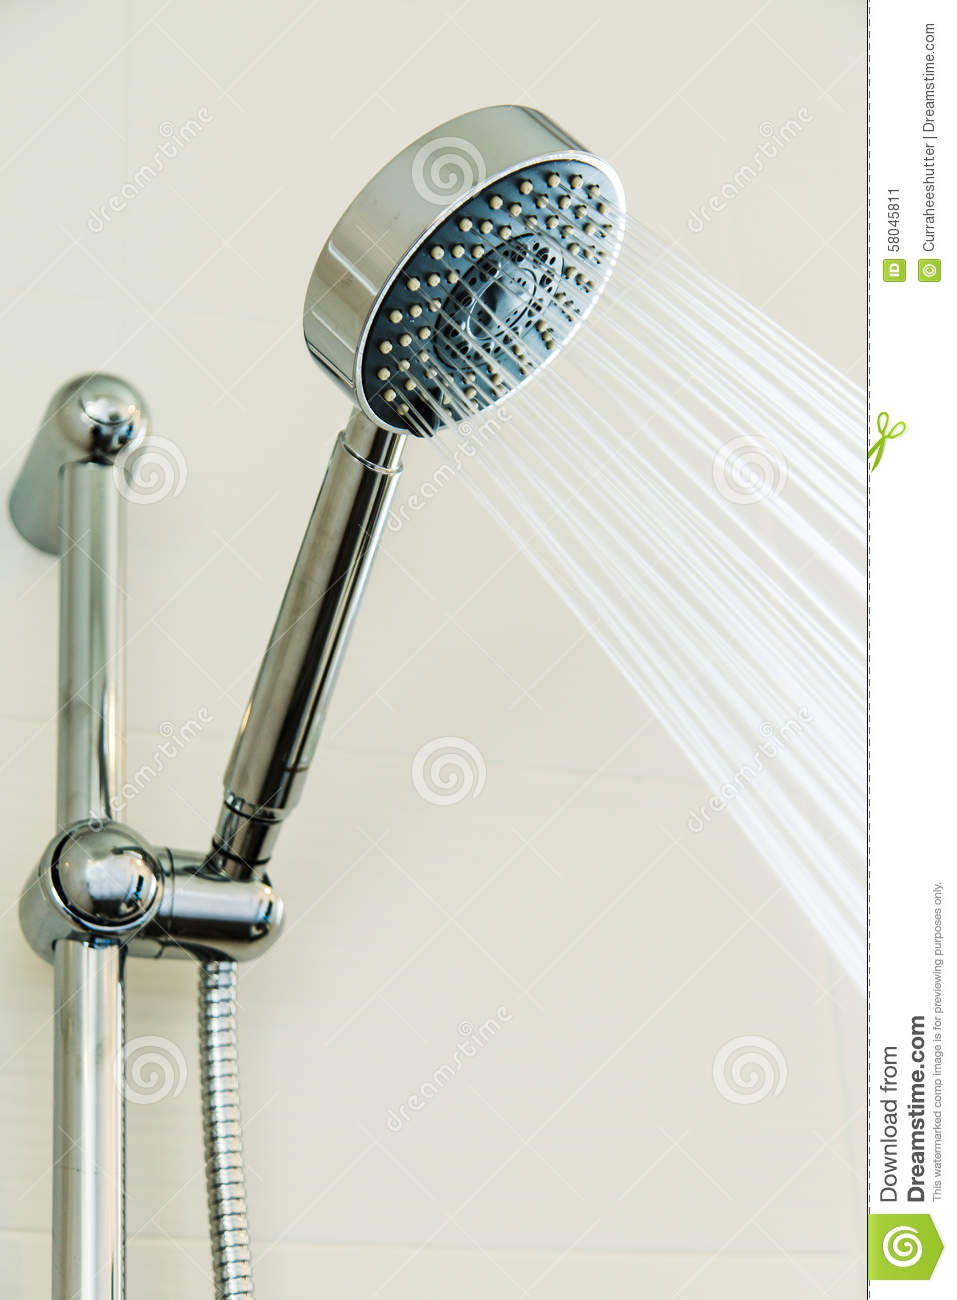 Silver Shower Head In Bathroom With Water Drops Flowing